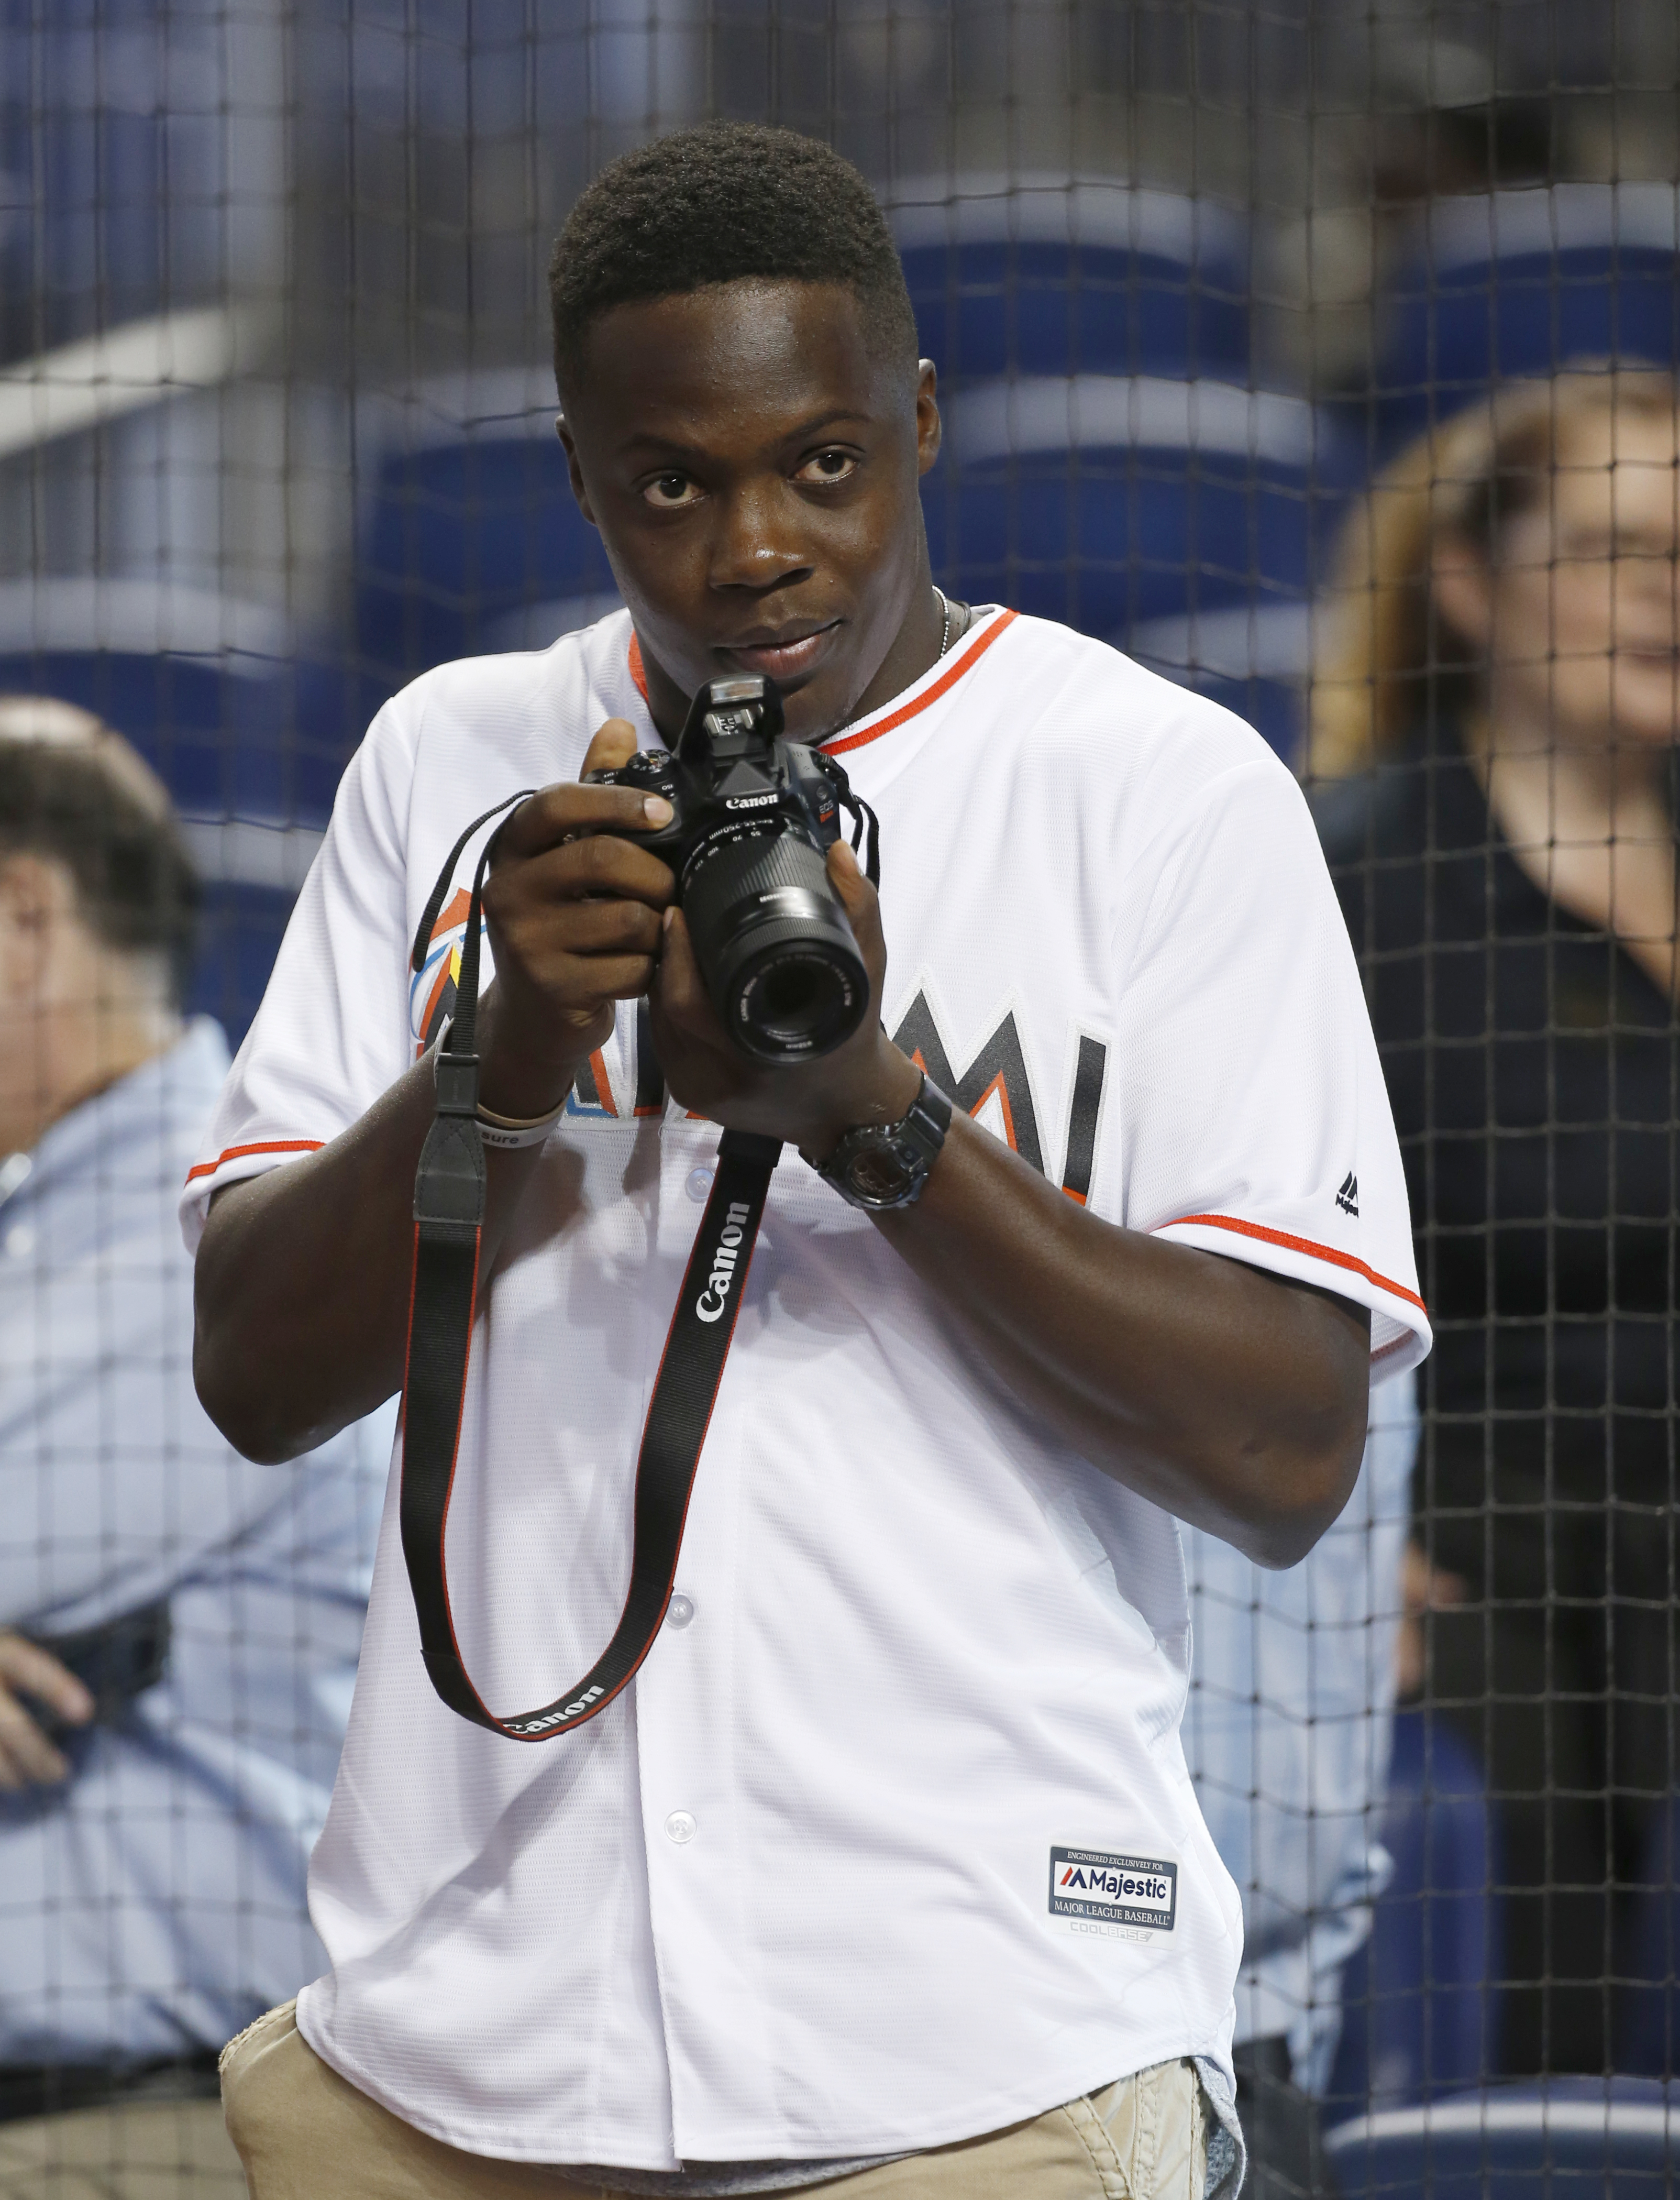 Minnesota Vikings quarterback Teddy Bridgewater takes photos before throwing out a ceremonial first pitch before the start of a baseball game between the Miami Marlins and the Philadelphia Phillies, Monday, July 25, 2016, in Miami. (AP Photo/Wilfredo Lee)